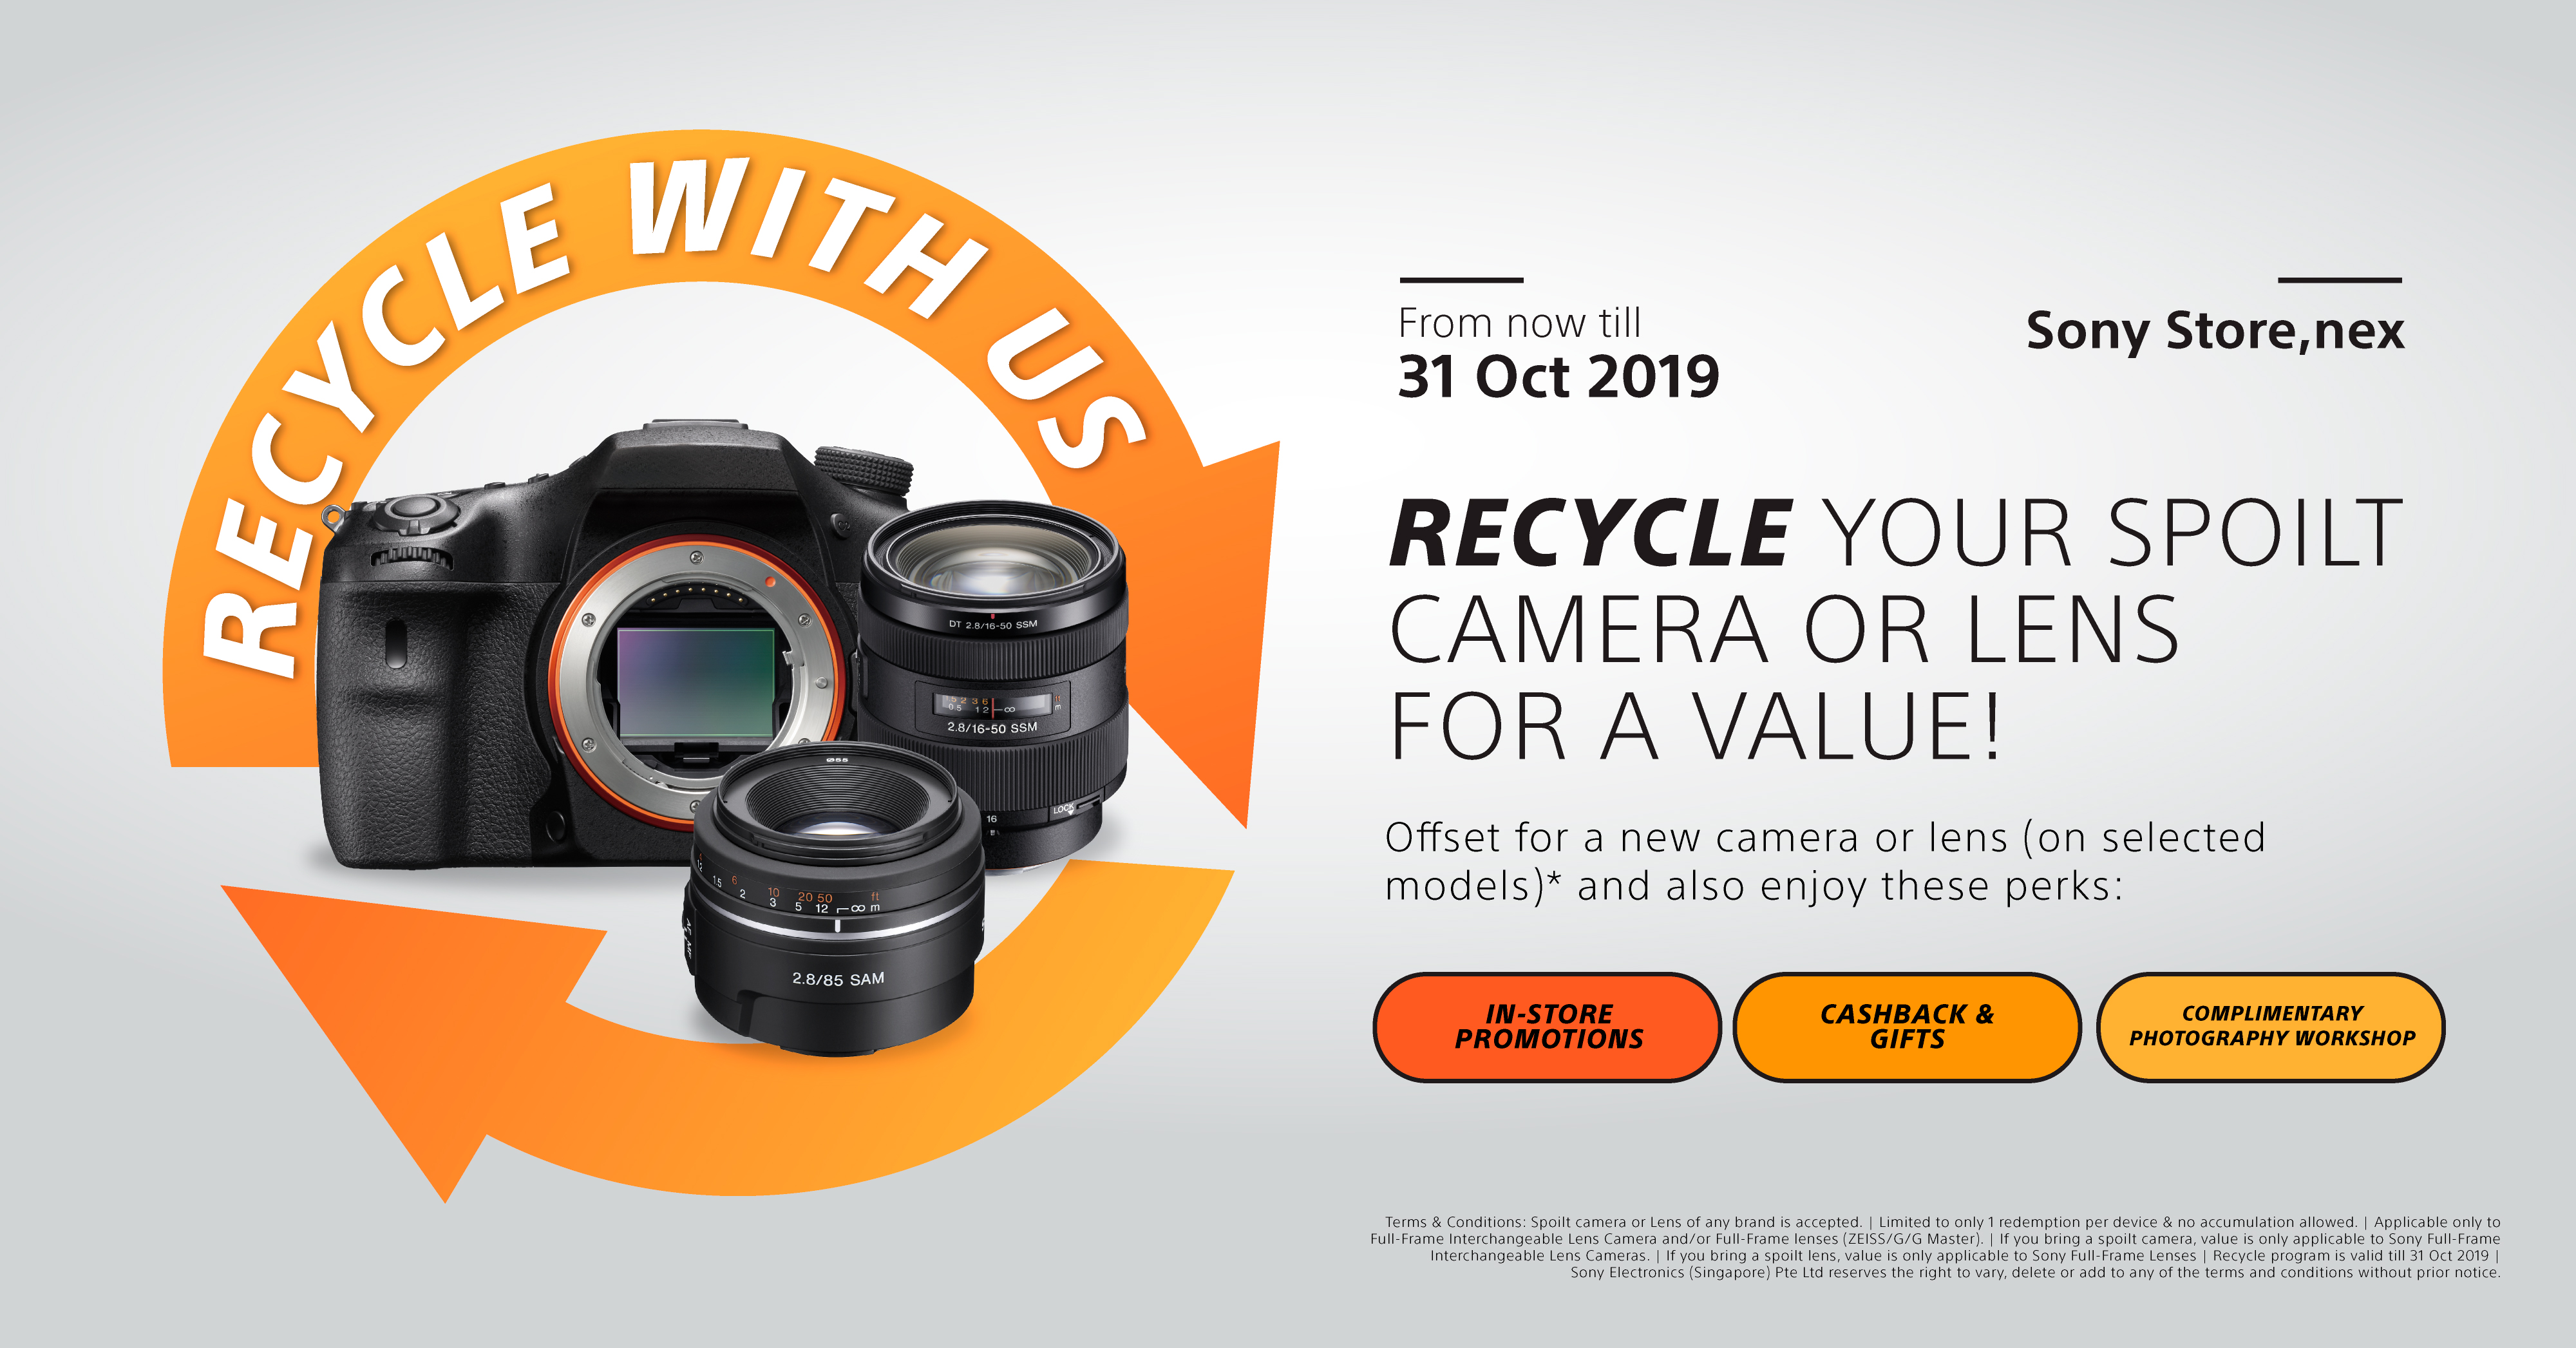 Recycle your spoilt camera or lens for a value at Sony Store, nex, from now till 31 Oct 2019.